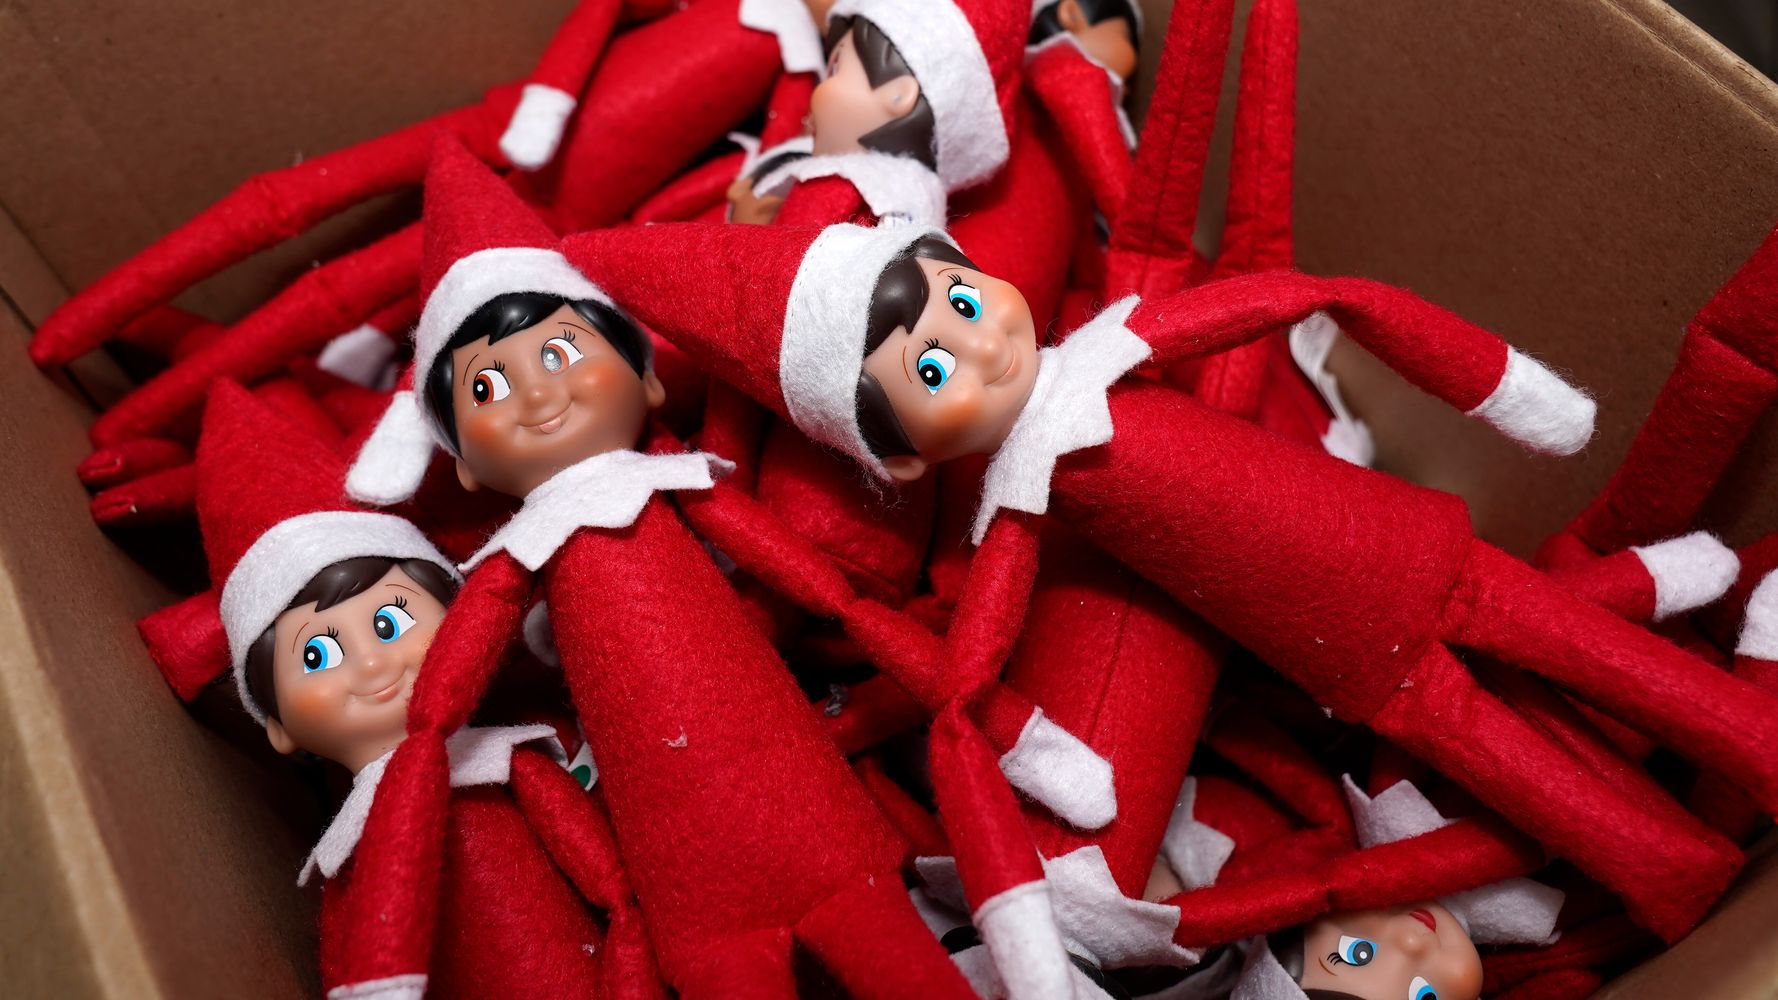 Parents, Put The Elf On The Shelf Down